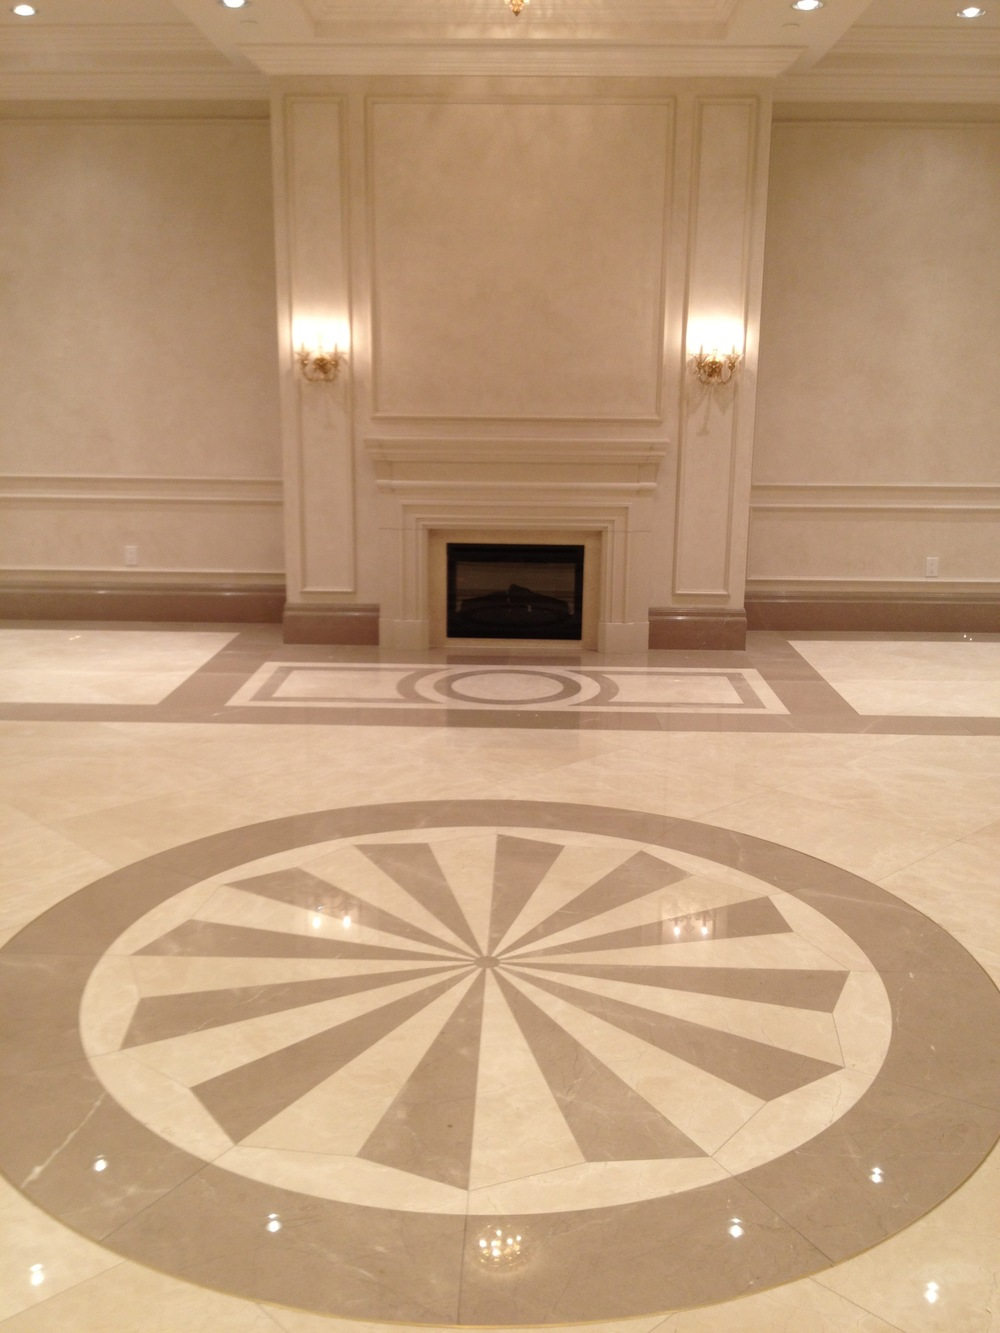 We specialize in custom tile work